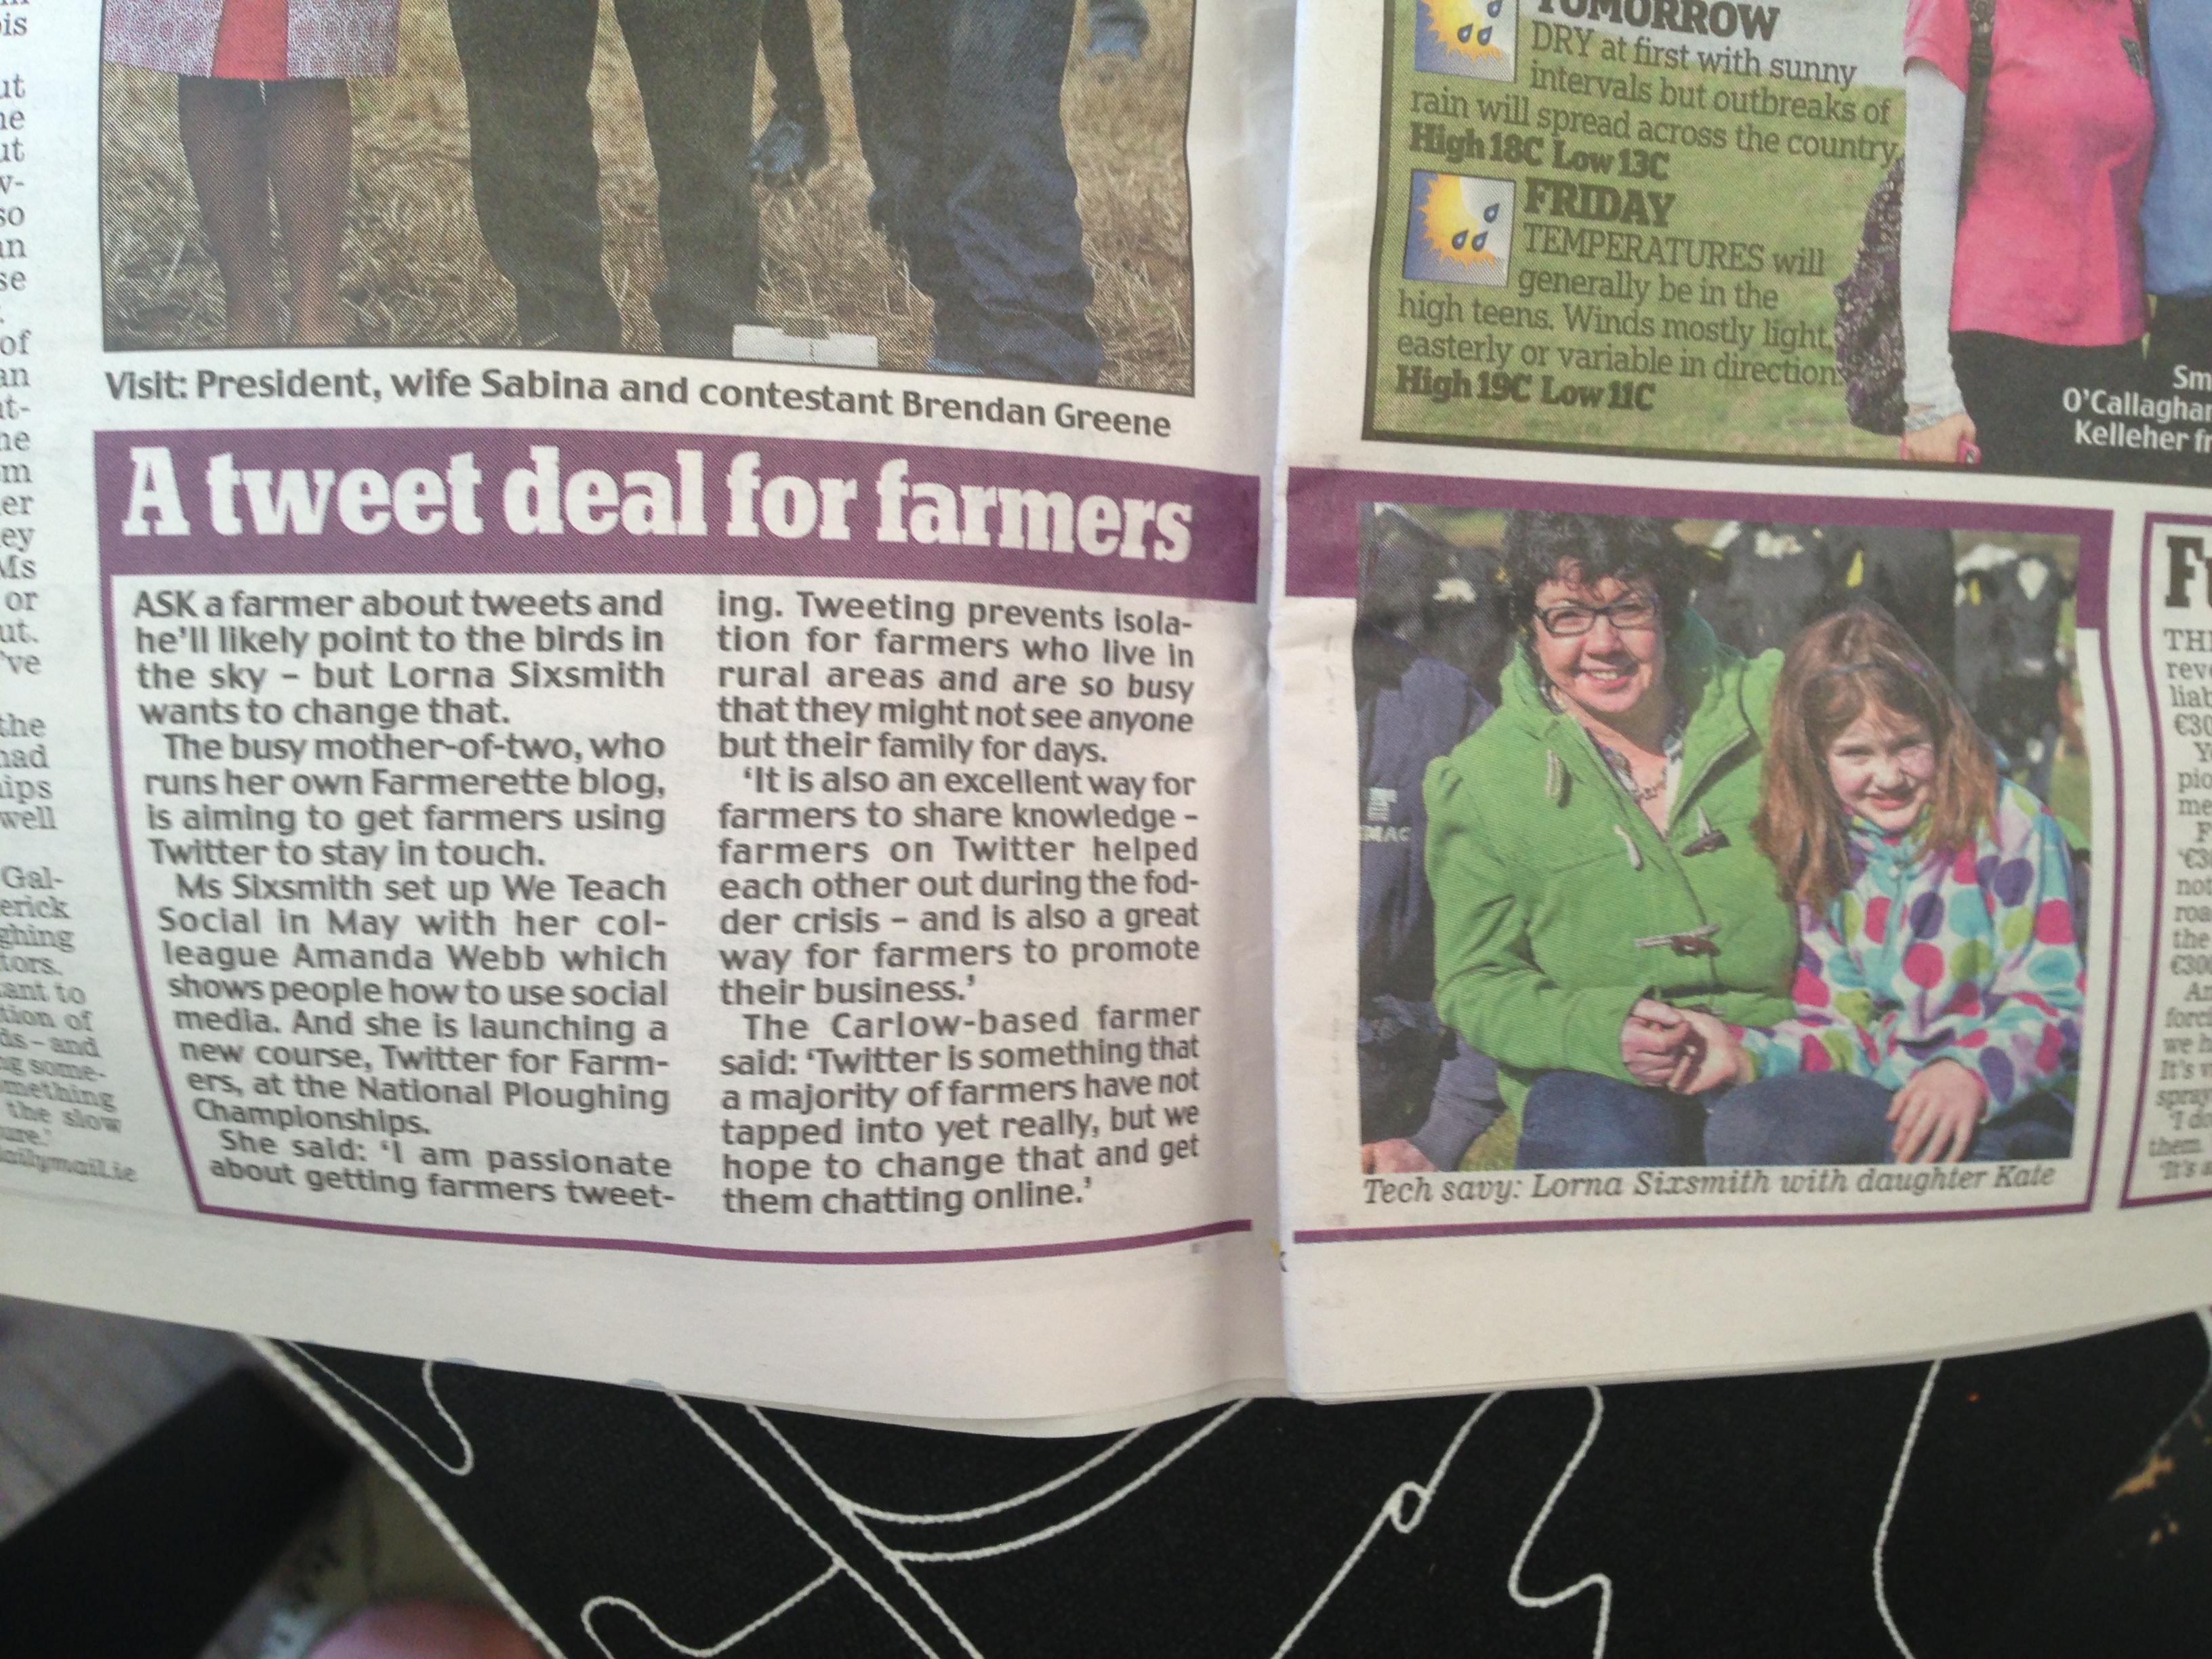 Tweeting Farmers in the Daily Mail